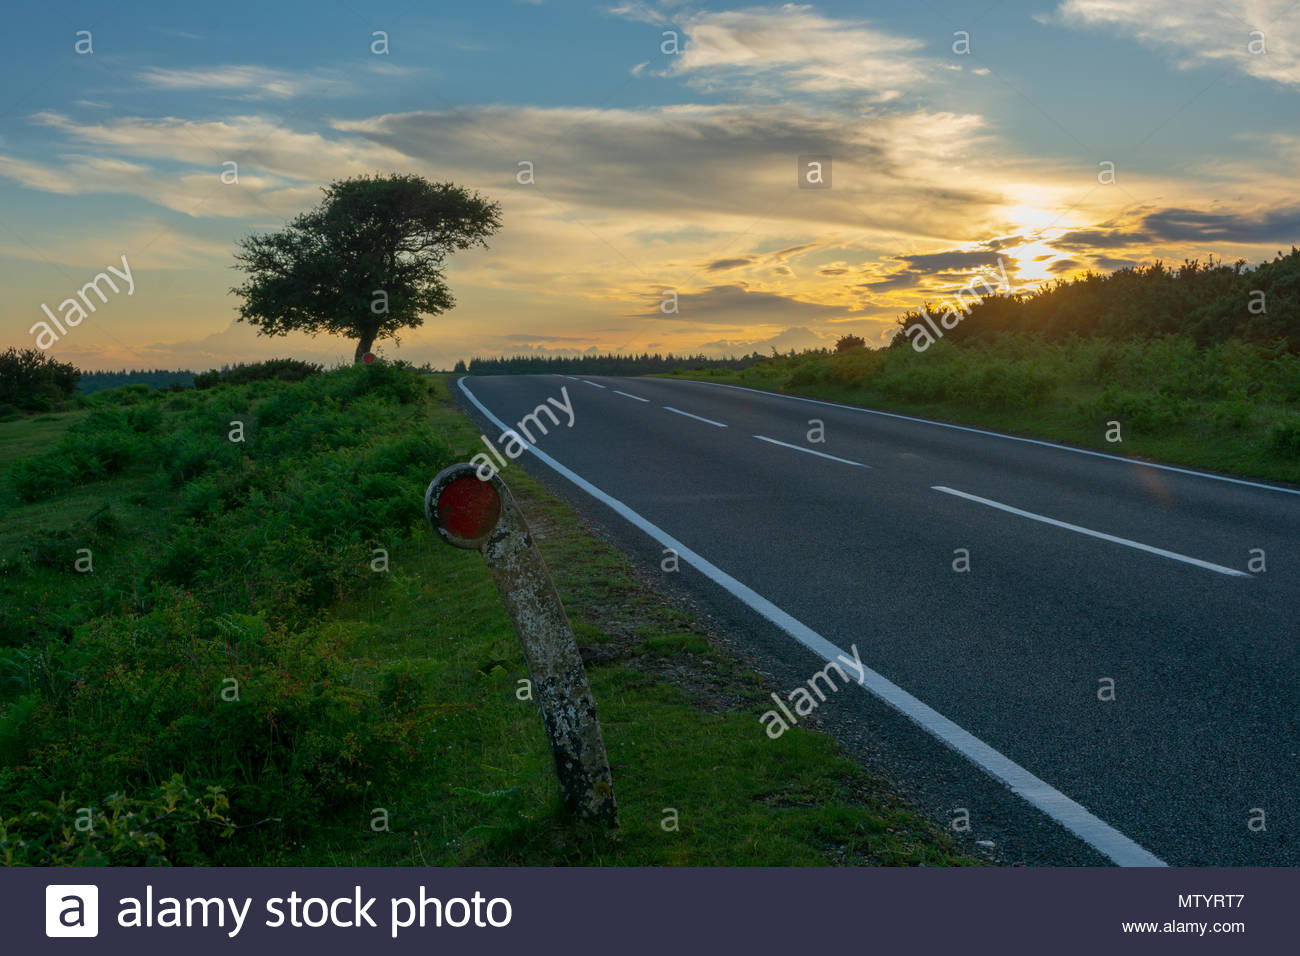 New Forest, Hampshire, England. Shower clouds and a golden sunset  behind a solitary roadside tree which has been shaped by the prevailing wind. - Stock Image